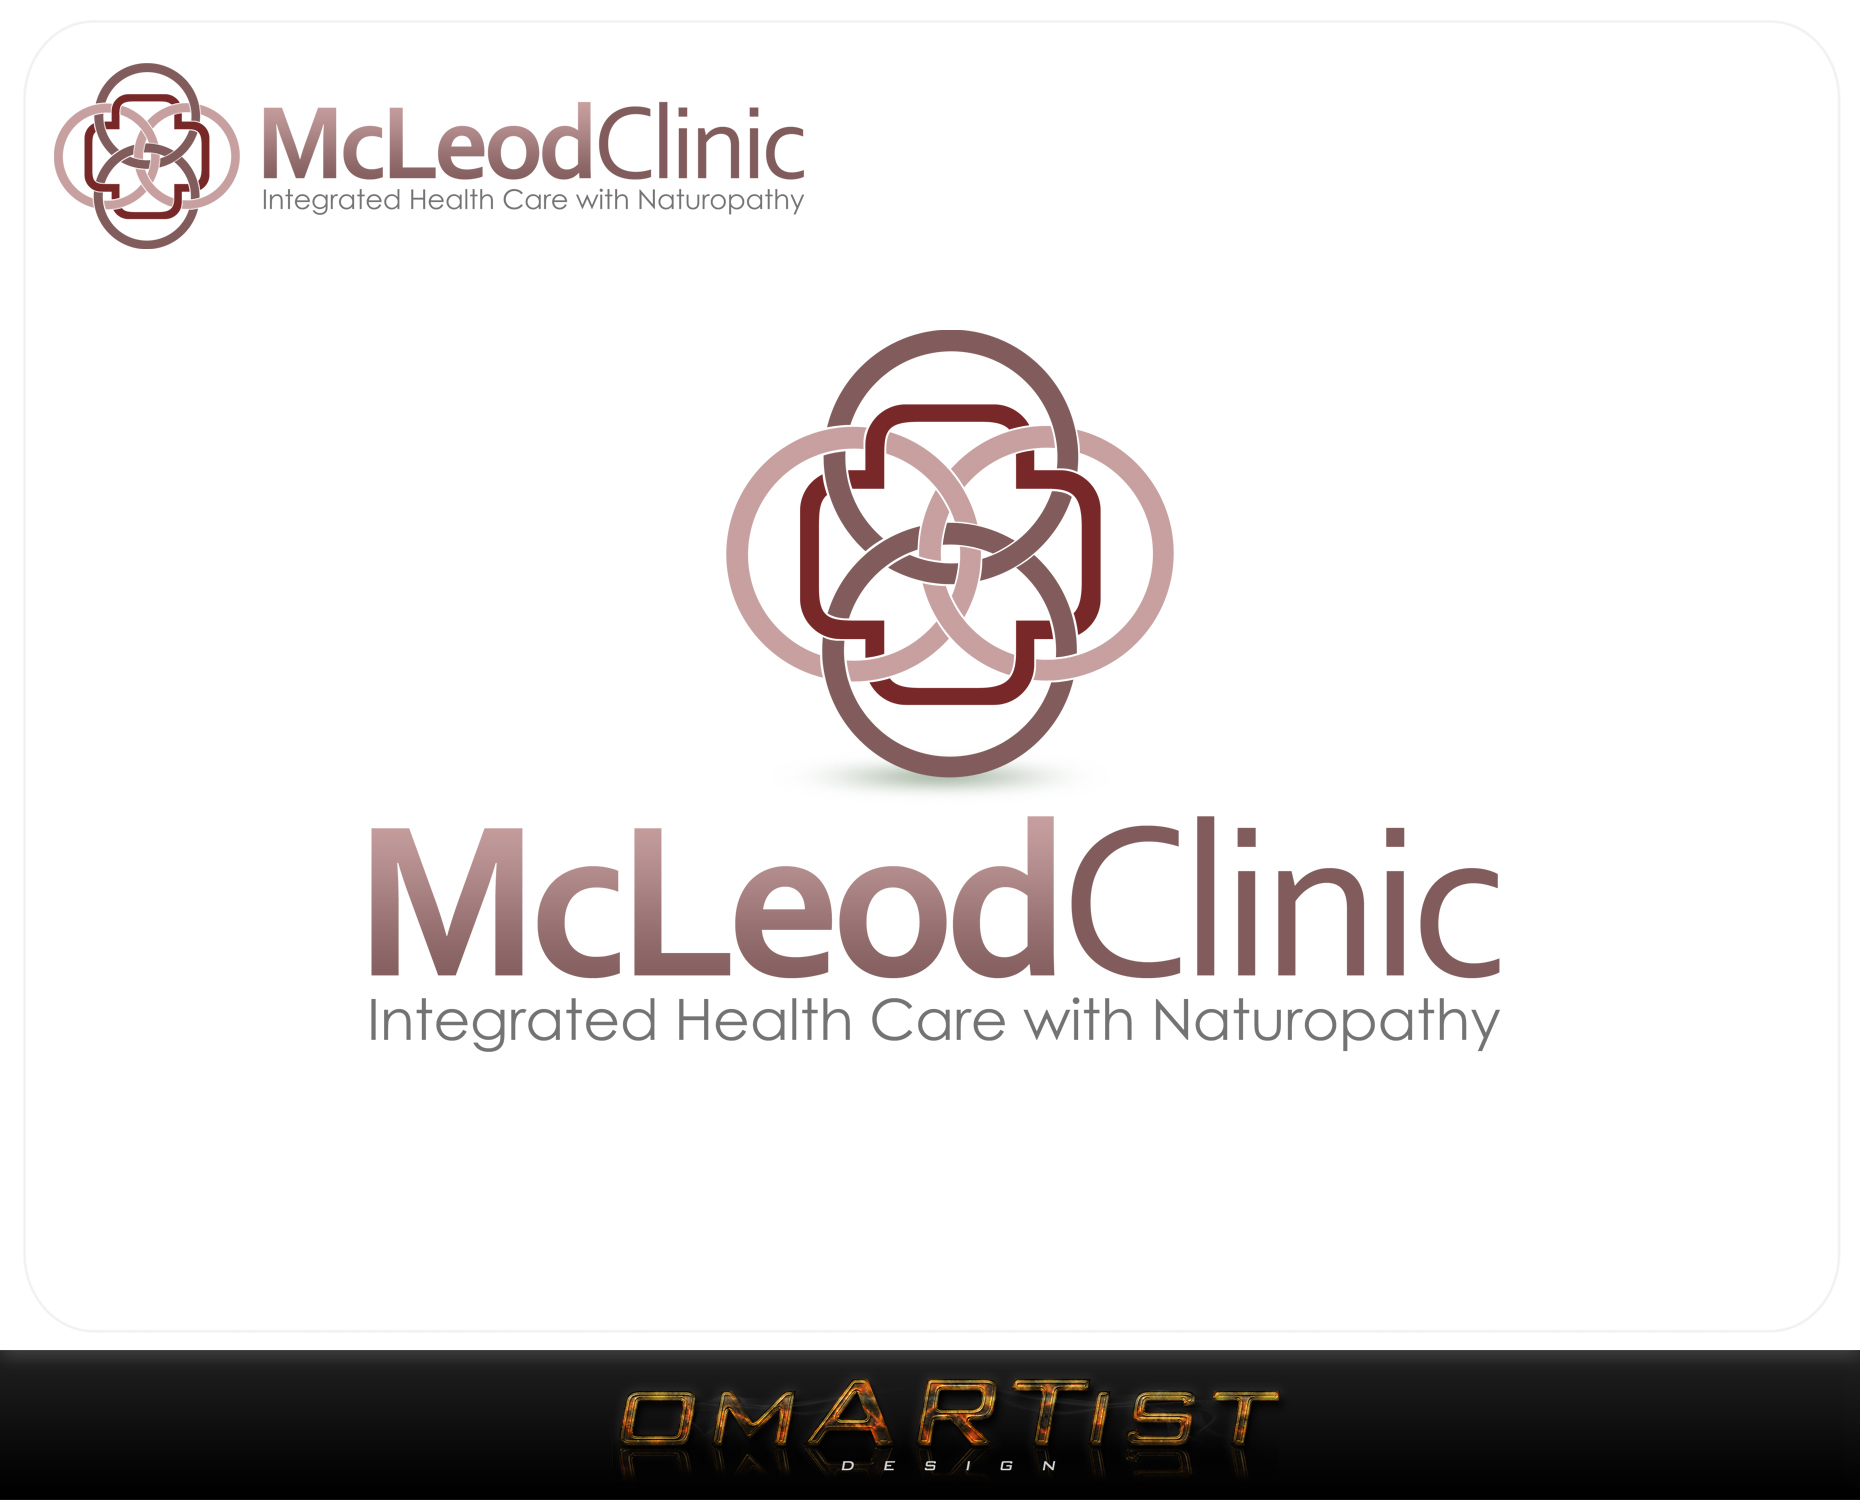 Logo Design by omARTist - Entry No. 109 in the Logo Design Contest Creative Logo Design for McLeod Clinic.